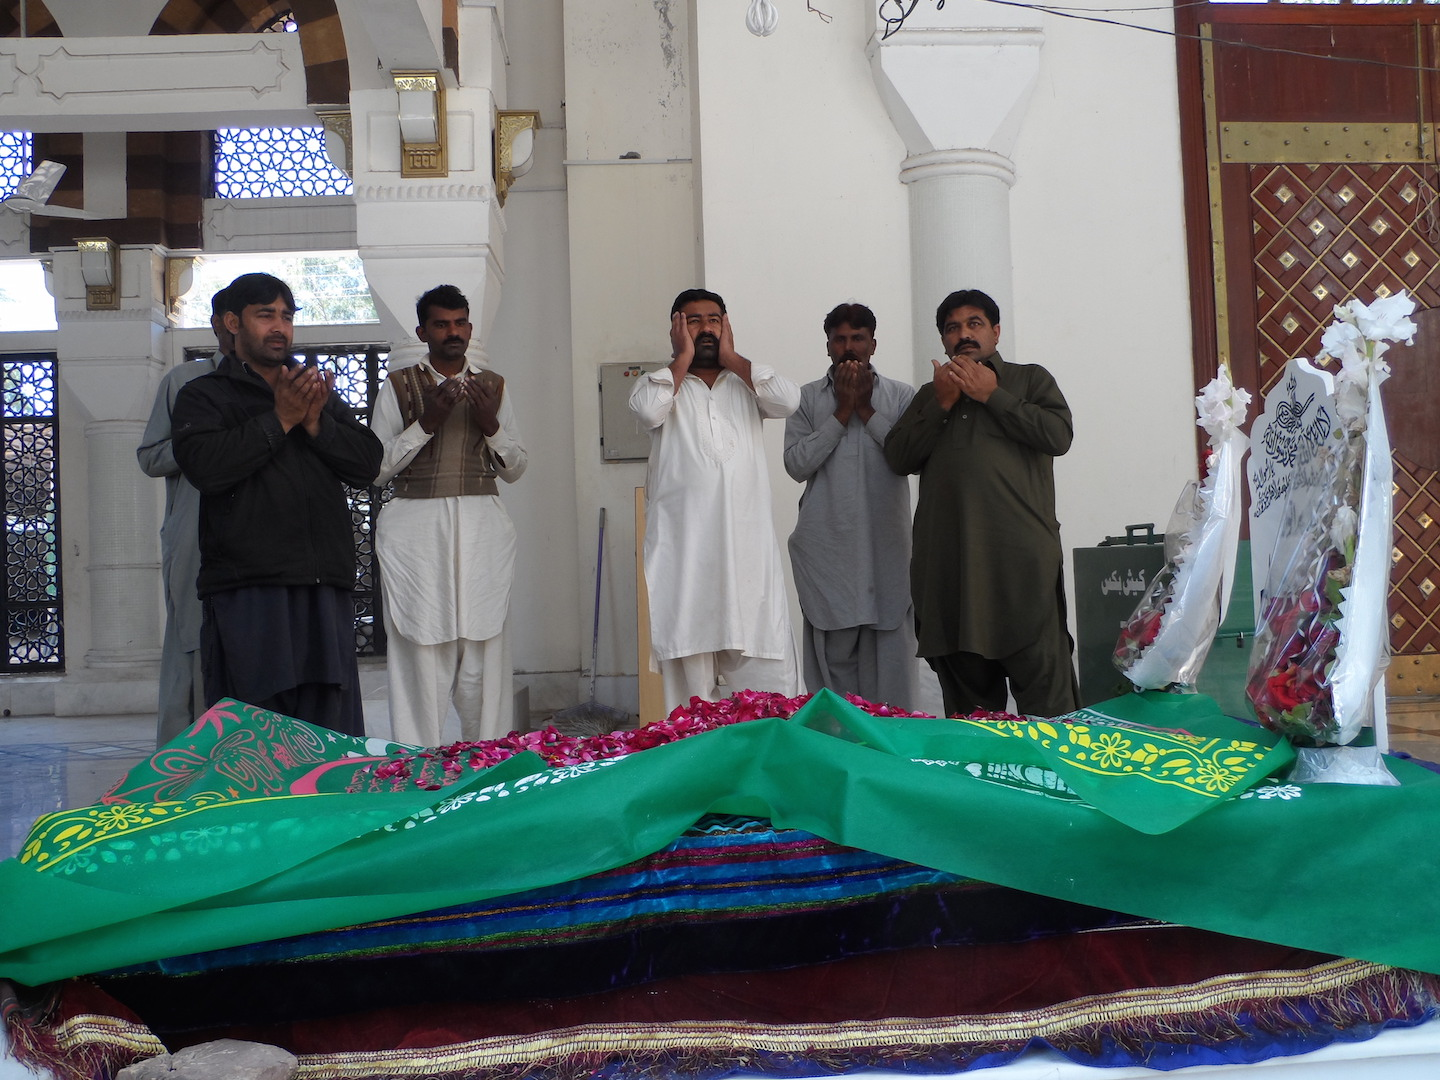 Devotees pray at the burial chamber in the Bari Imam Sufi shrine in Islamabad